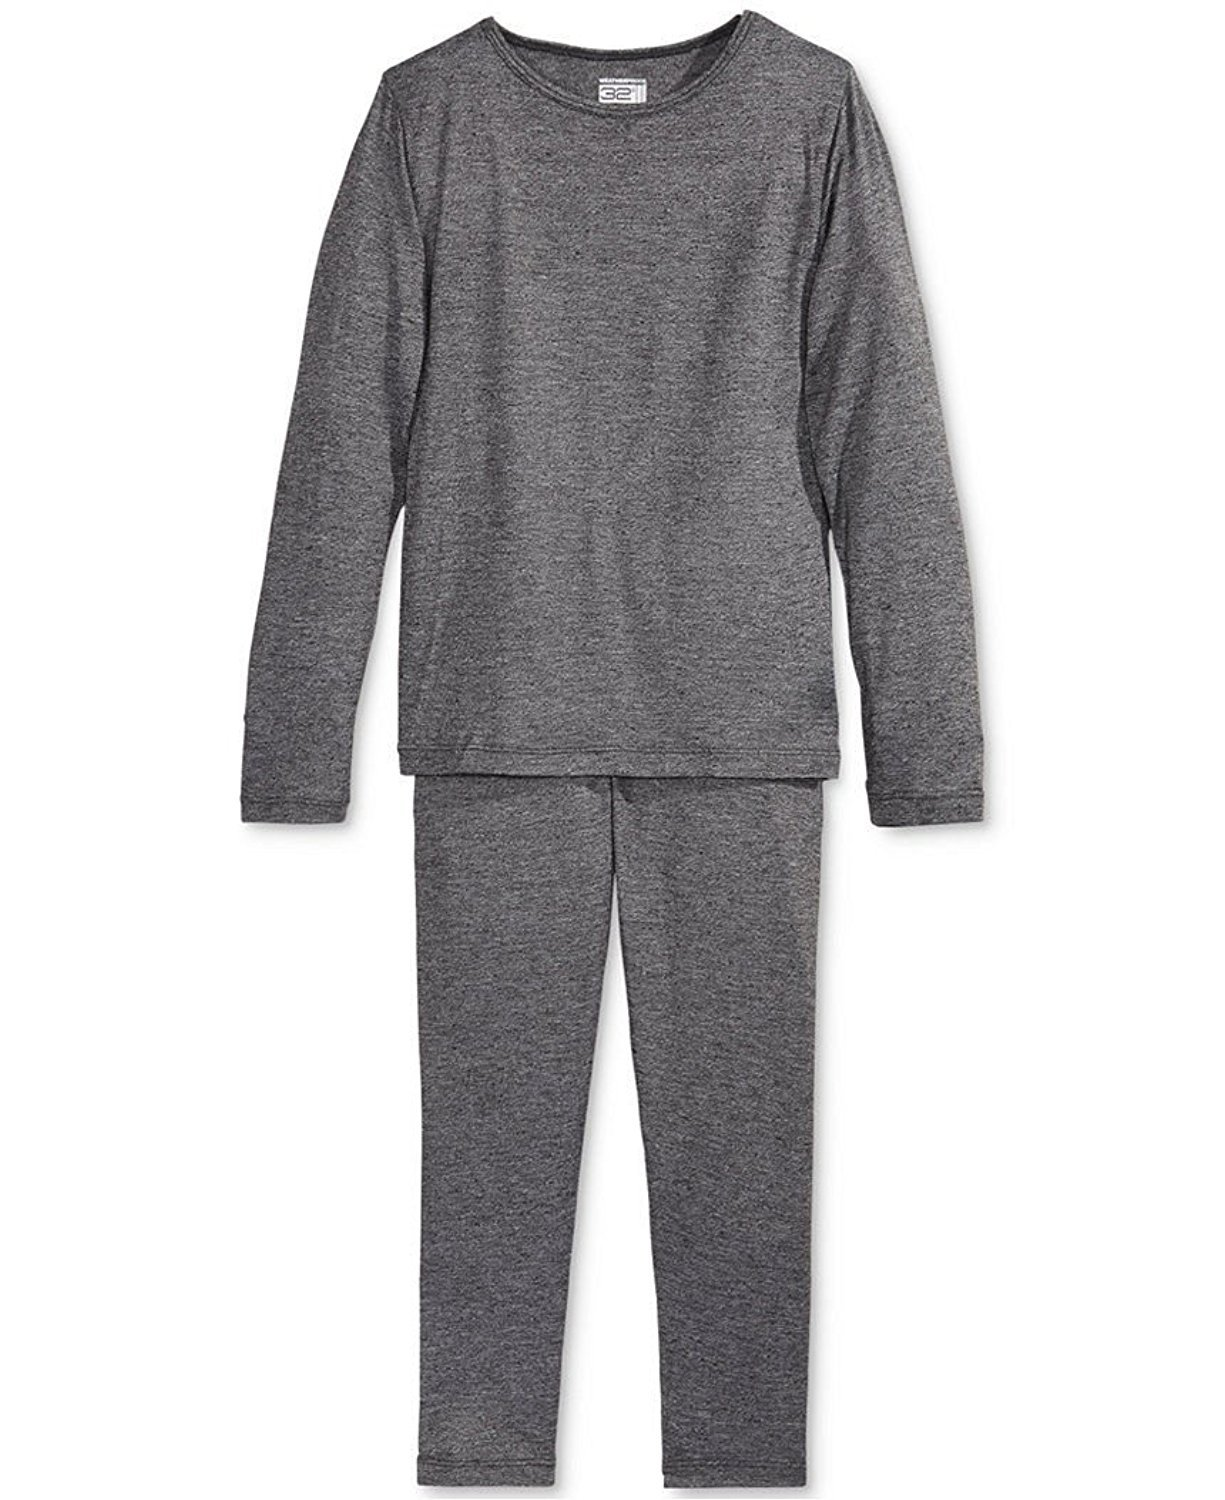 32 Degrees Heat Boys Long Sleeve Crew Neck and Legging Set